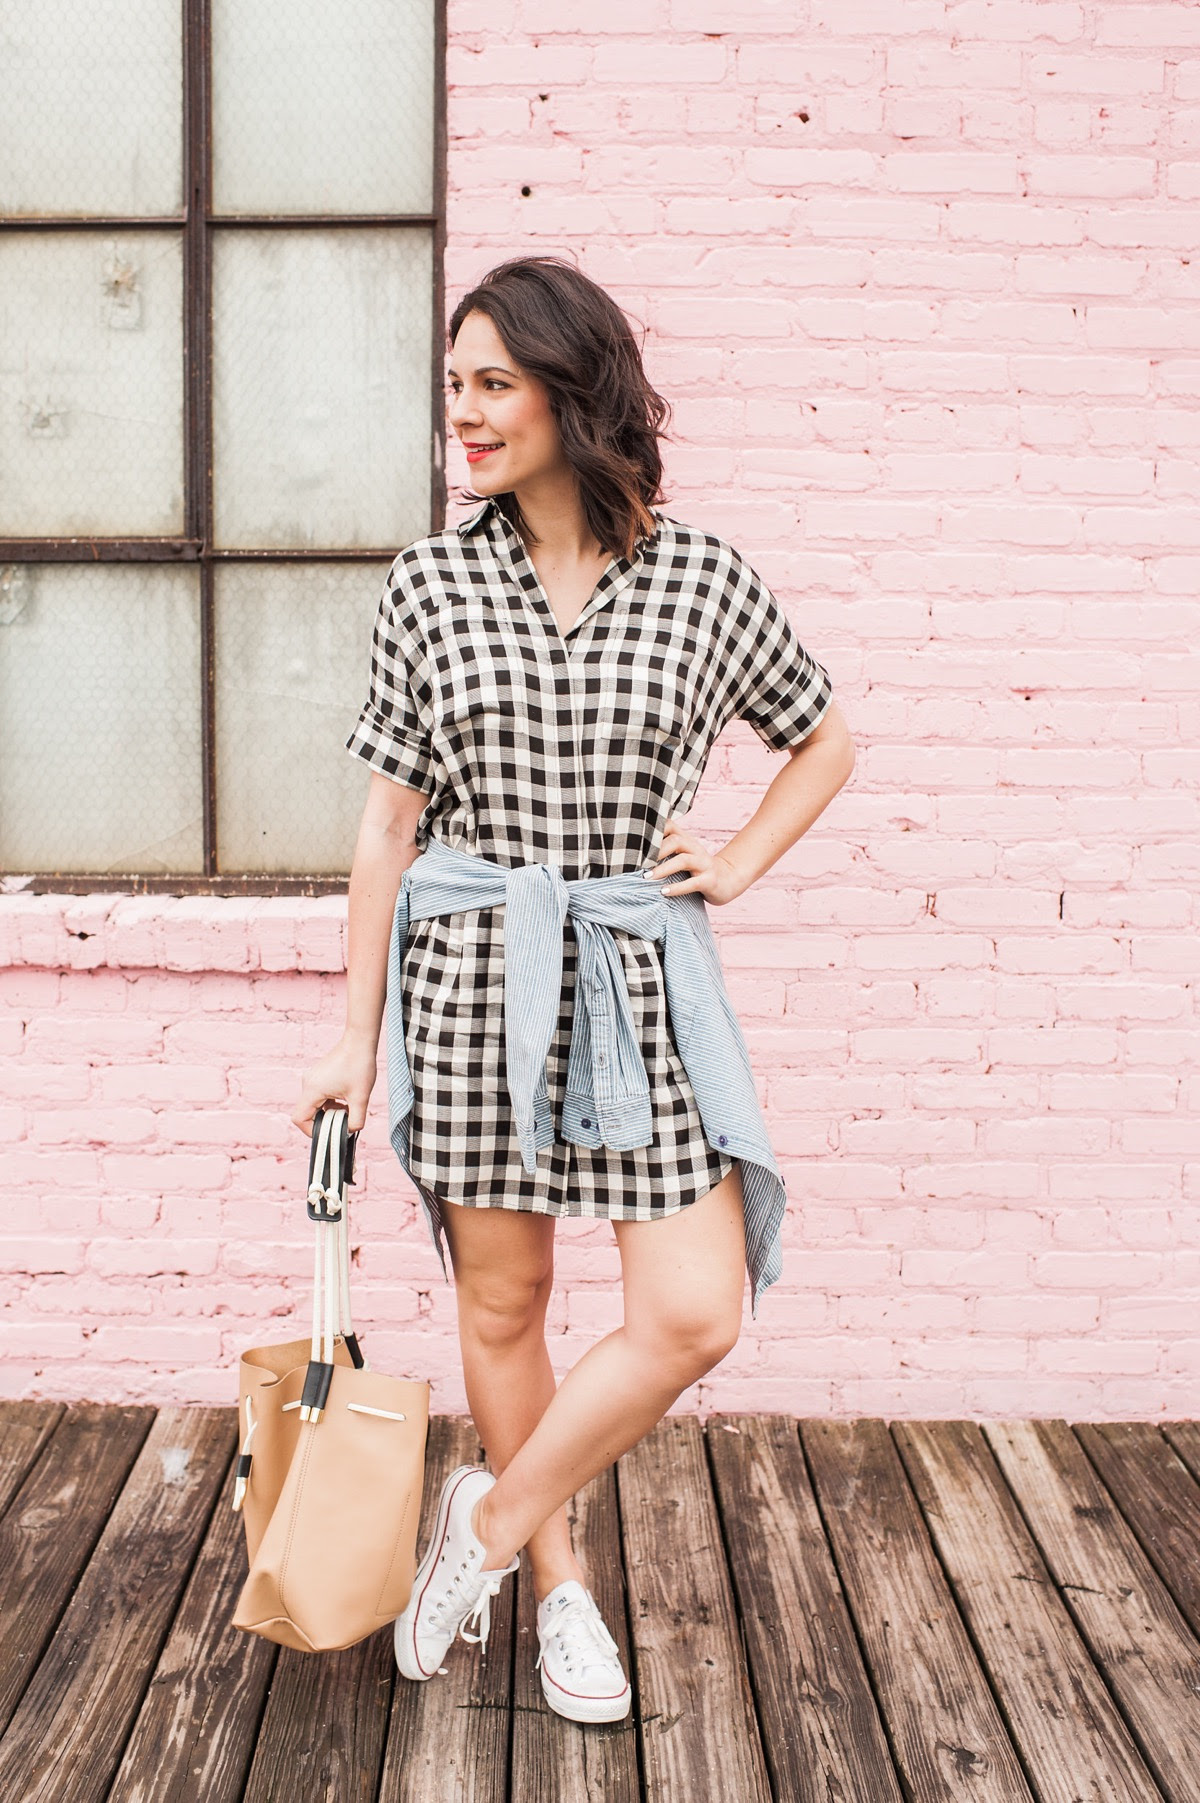 Gingham Madewell Dress, fashion blog, outfit ideas - @mystylevita